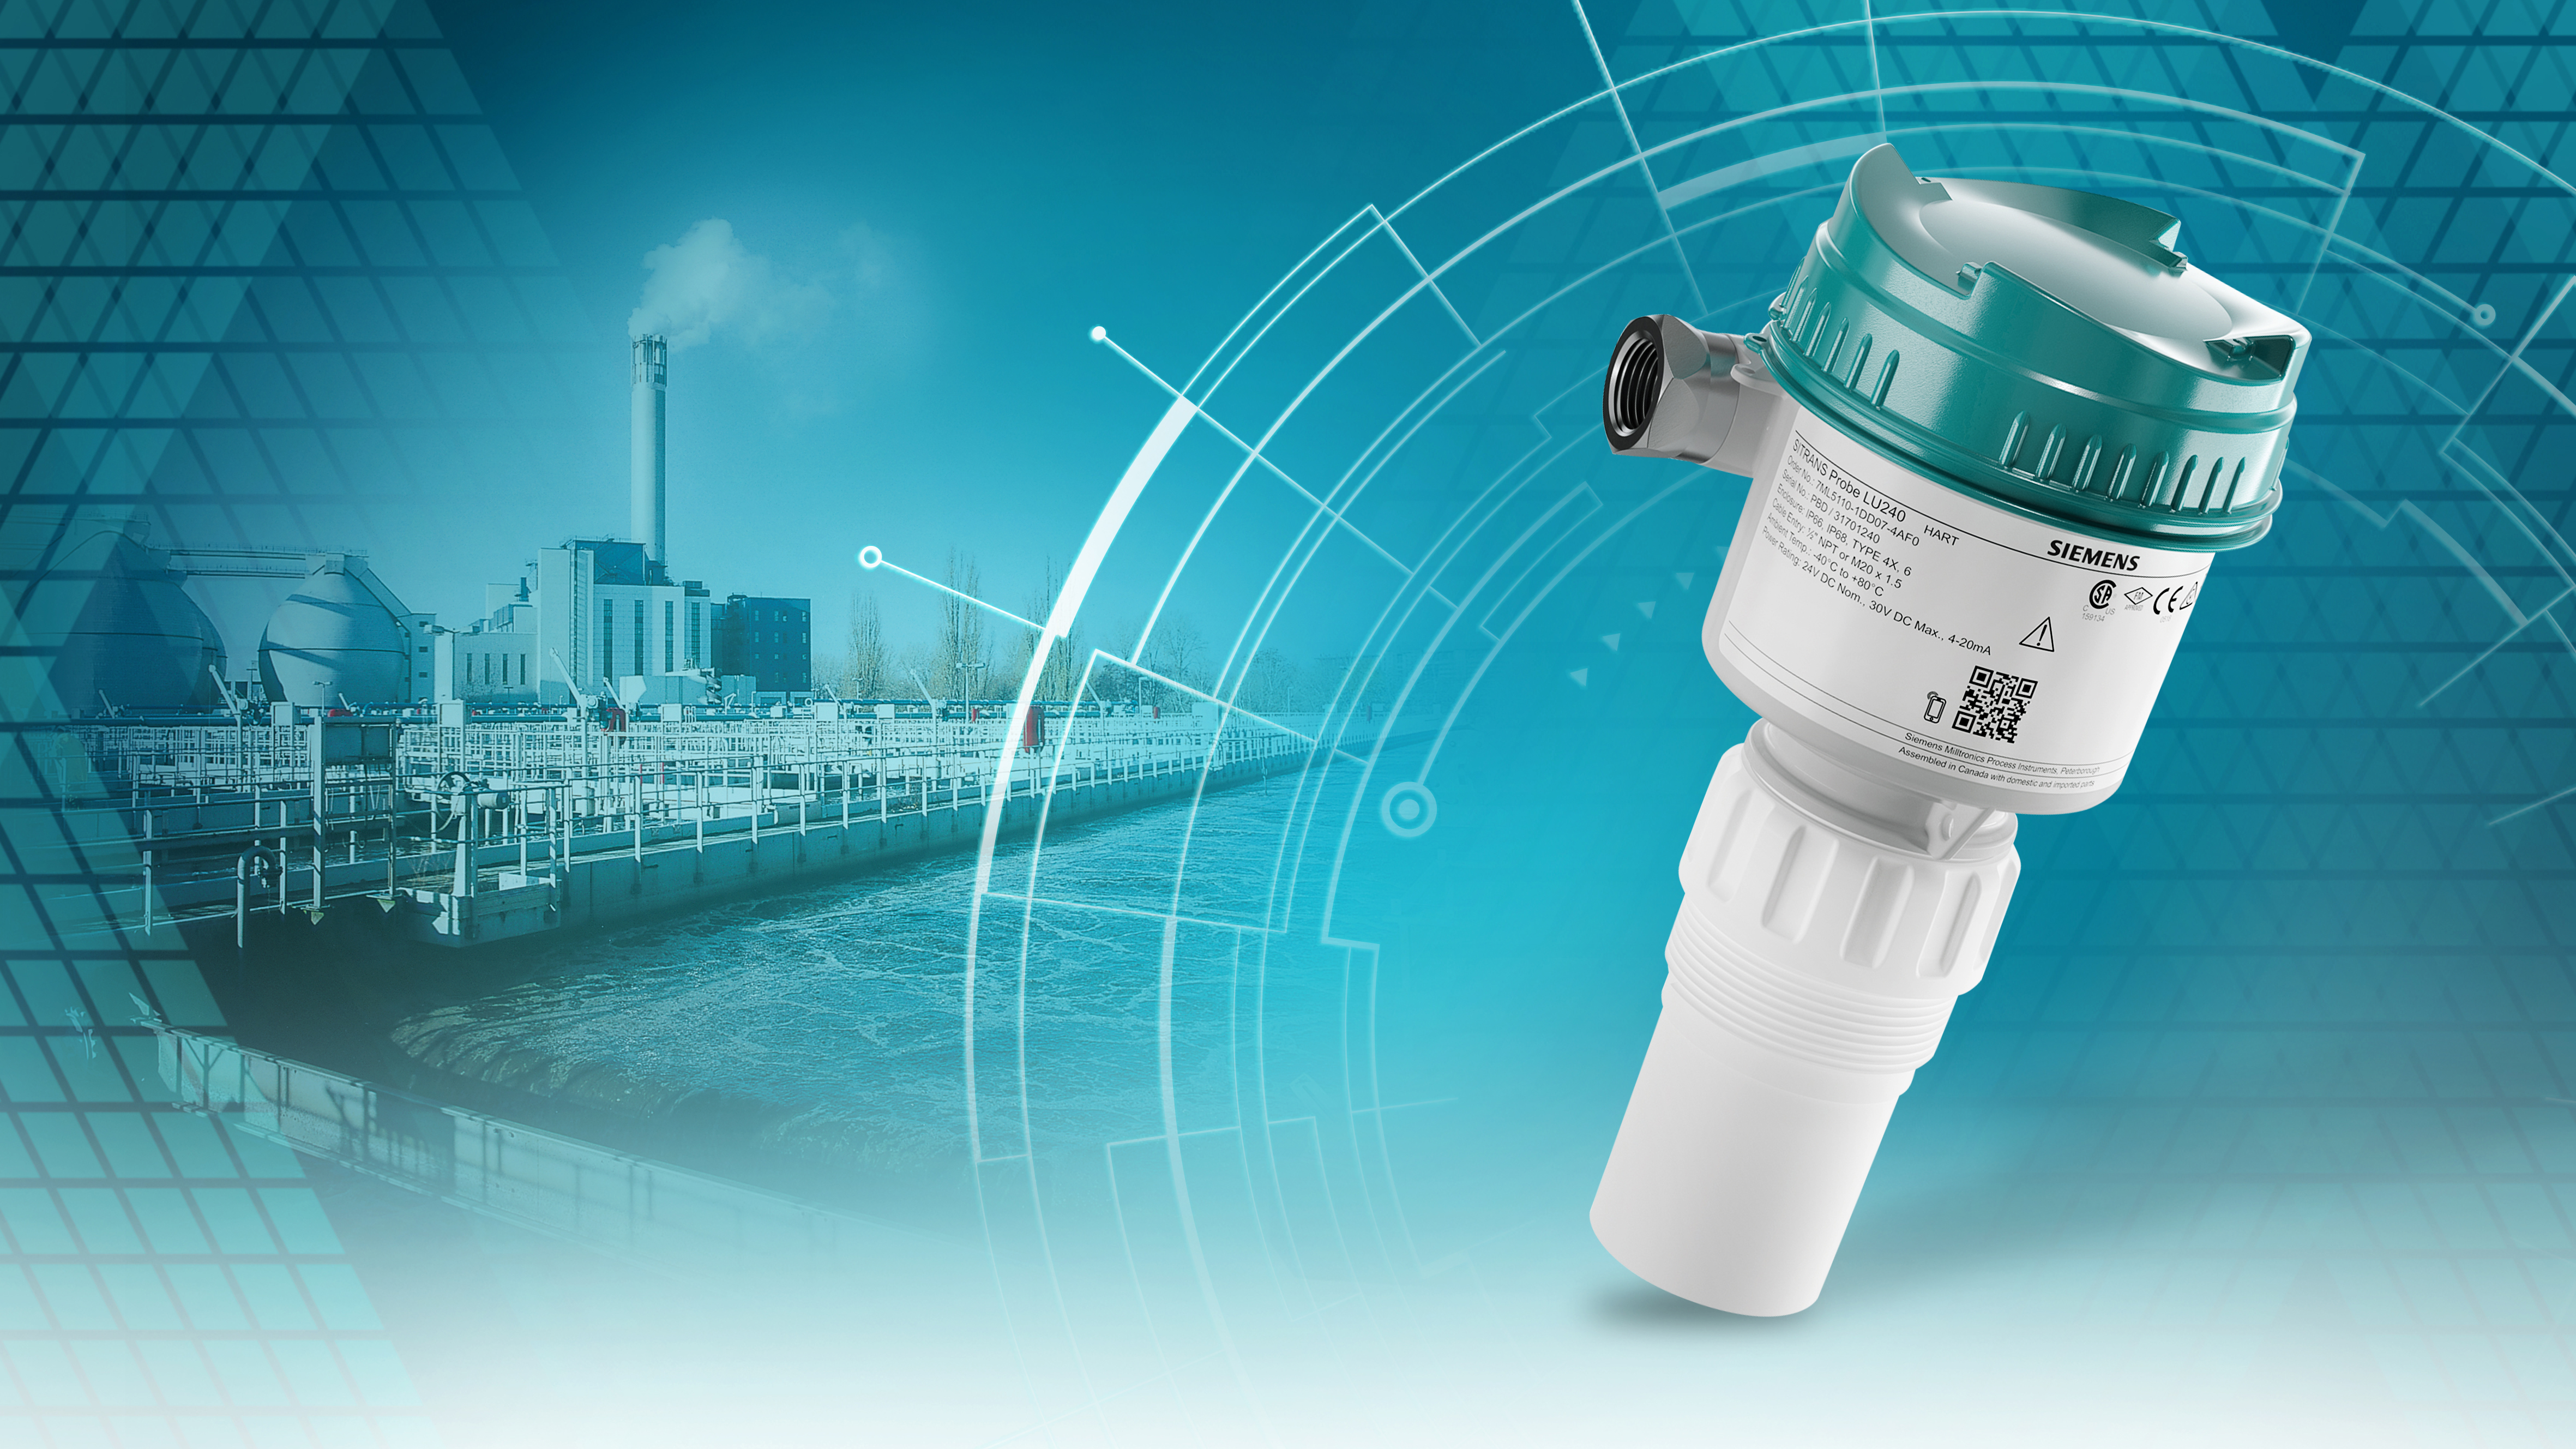 Siemens presents Sitrans Probe LU240, its newest ultrasonic level measurement Hart transmitter, a hardworking and rugged device that provides reliable level, volume, and flow measurements.